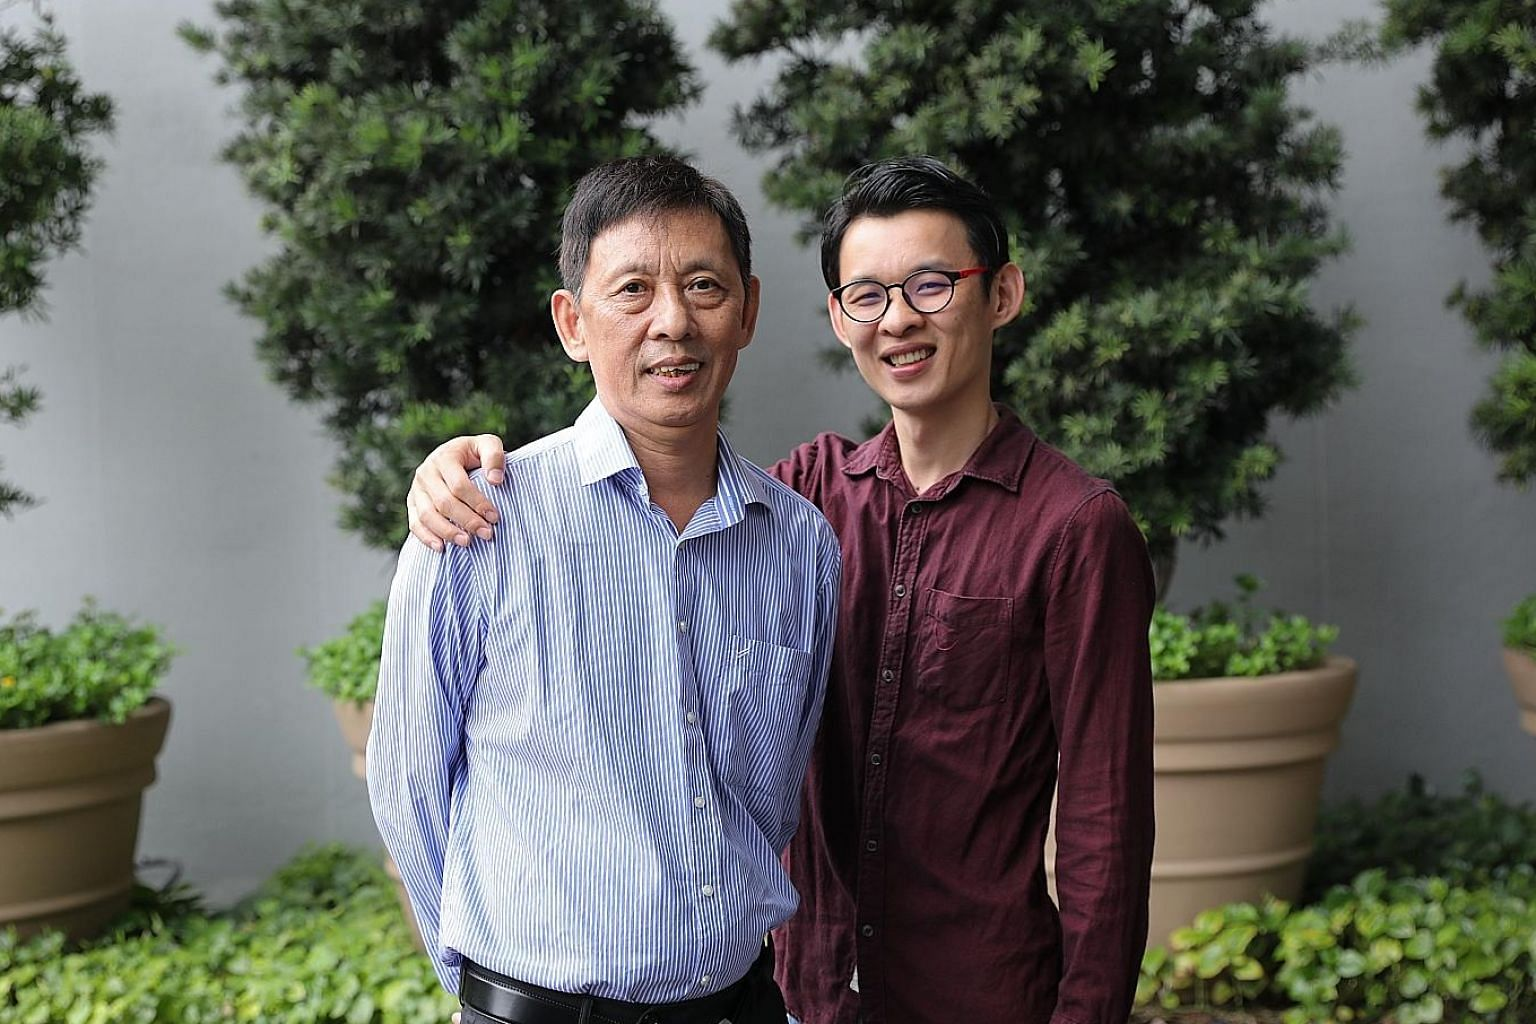 Mr Chen Yu Hui and his son Qingzhong are both recovering well, more than a year after the operation, and continue to go for follow-up medical checks. The elder Mr Chen has B positive blood while his son is A positive.